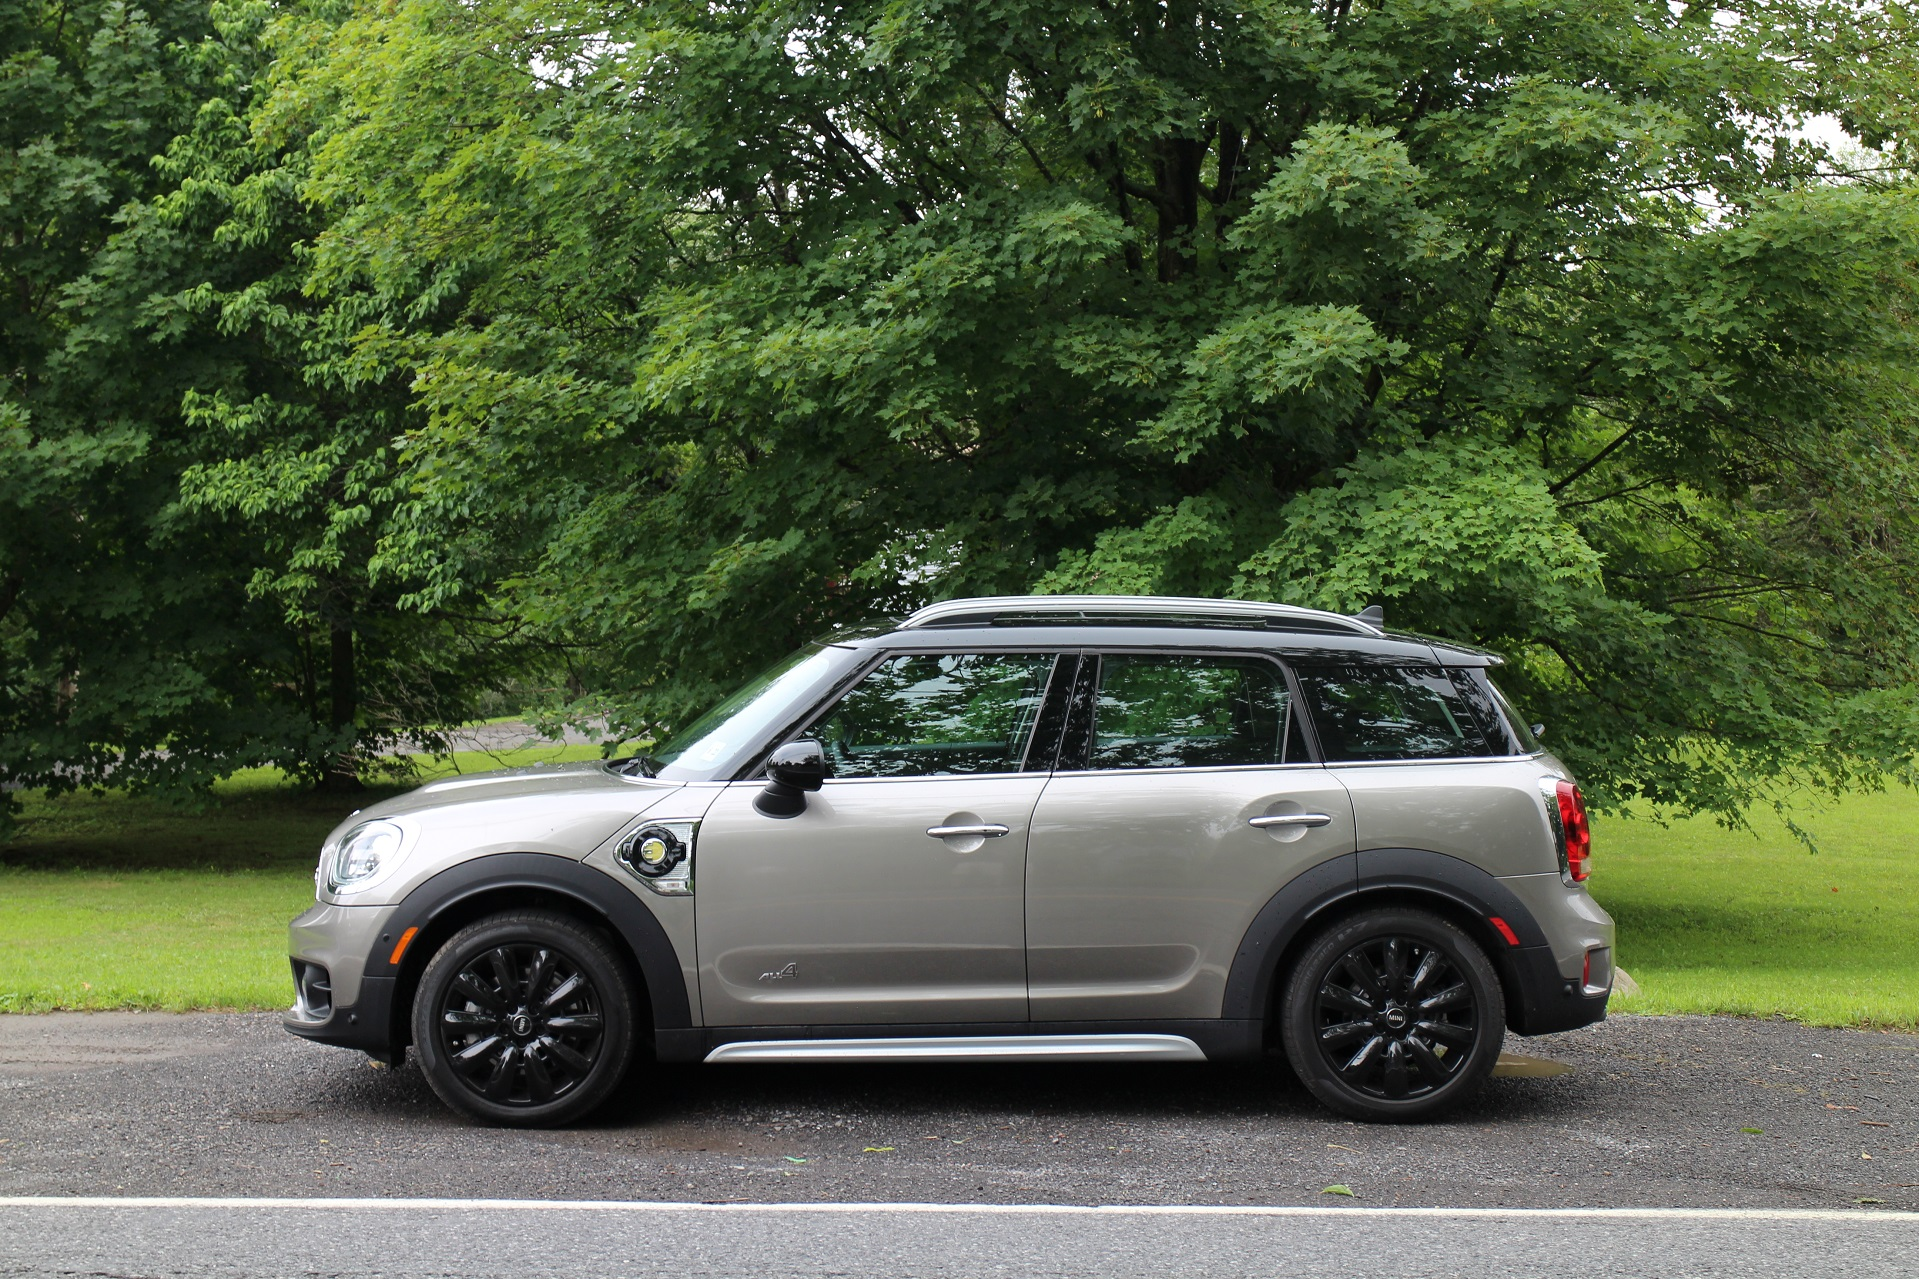 2018 mini cooper s e countryman all4 review of plug in hybrid. Black Bedroom Furniture Sets. Home Design Ideas